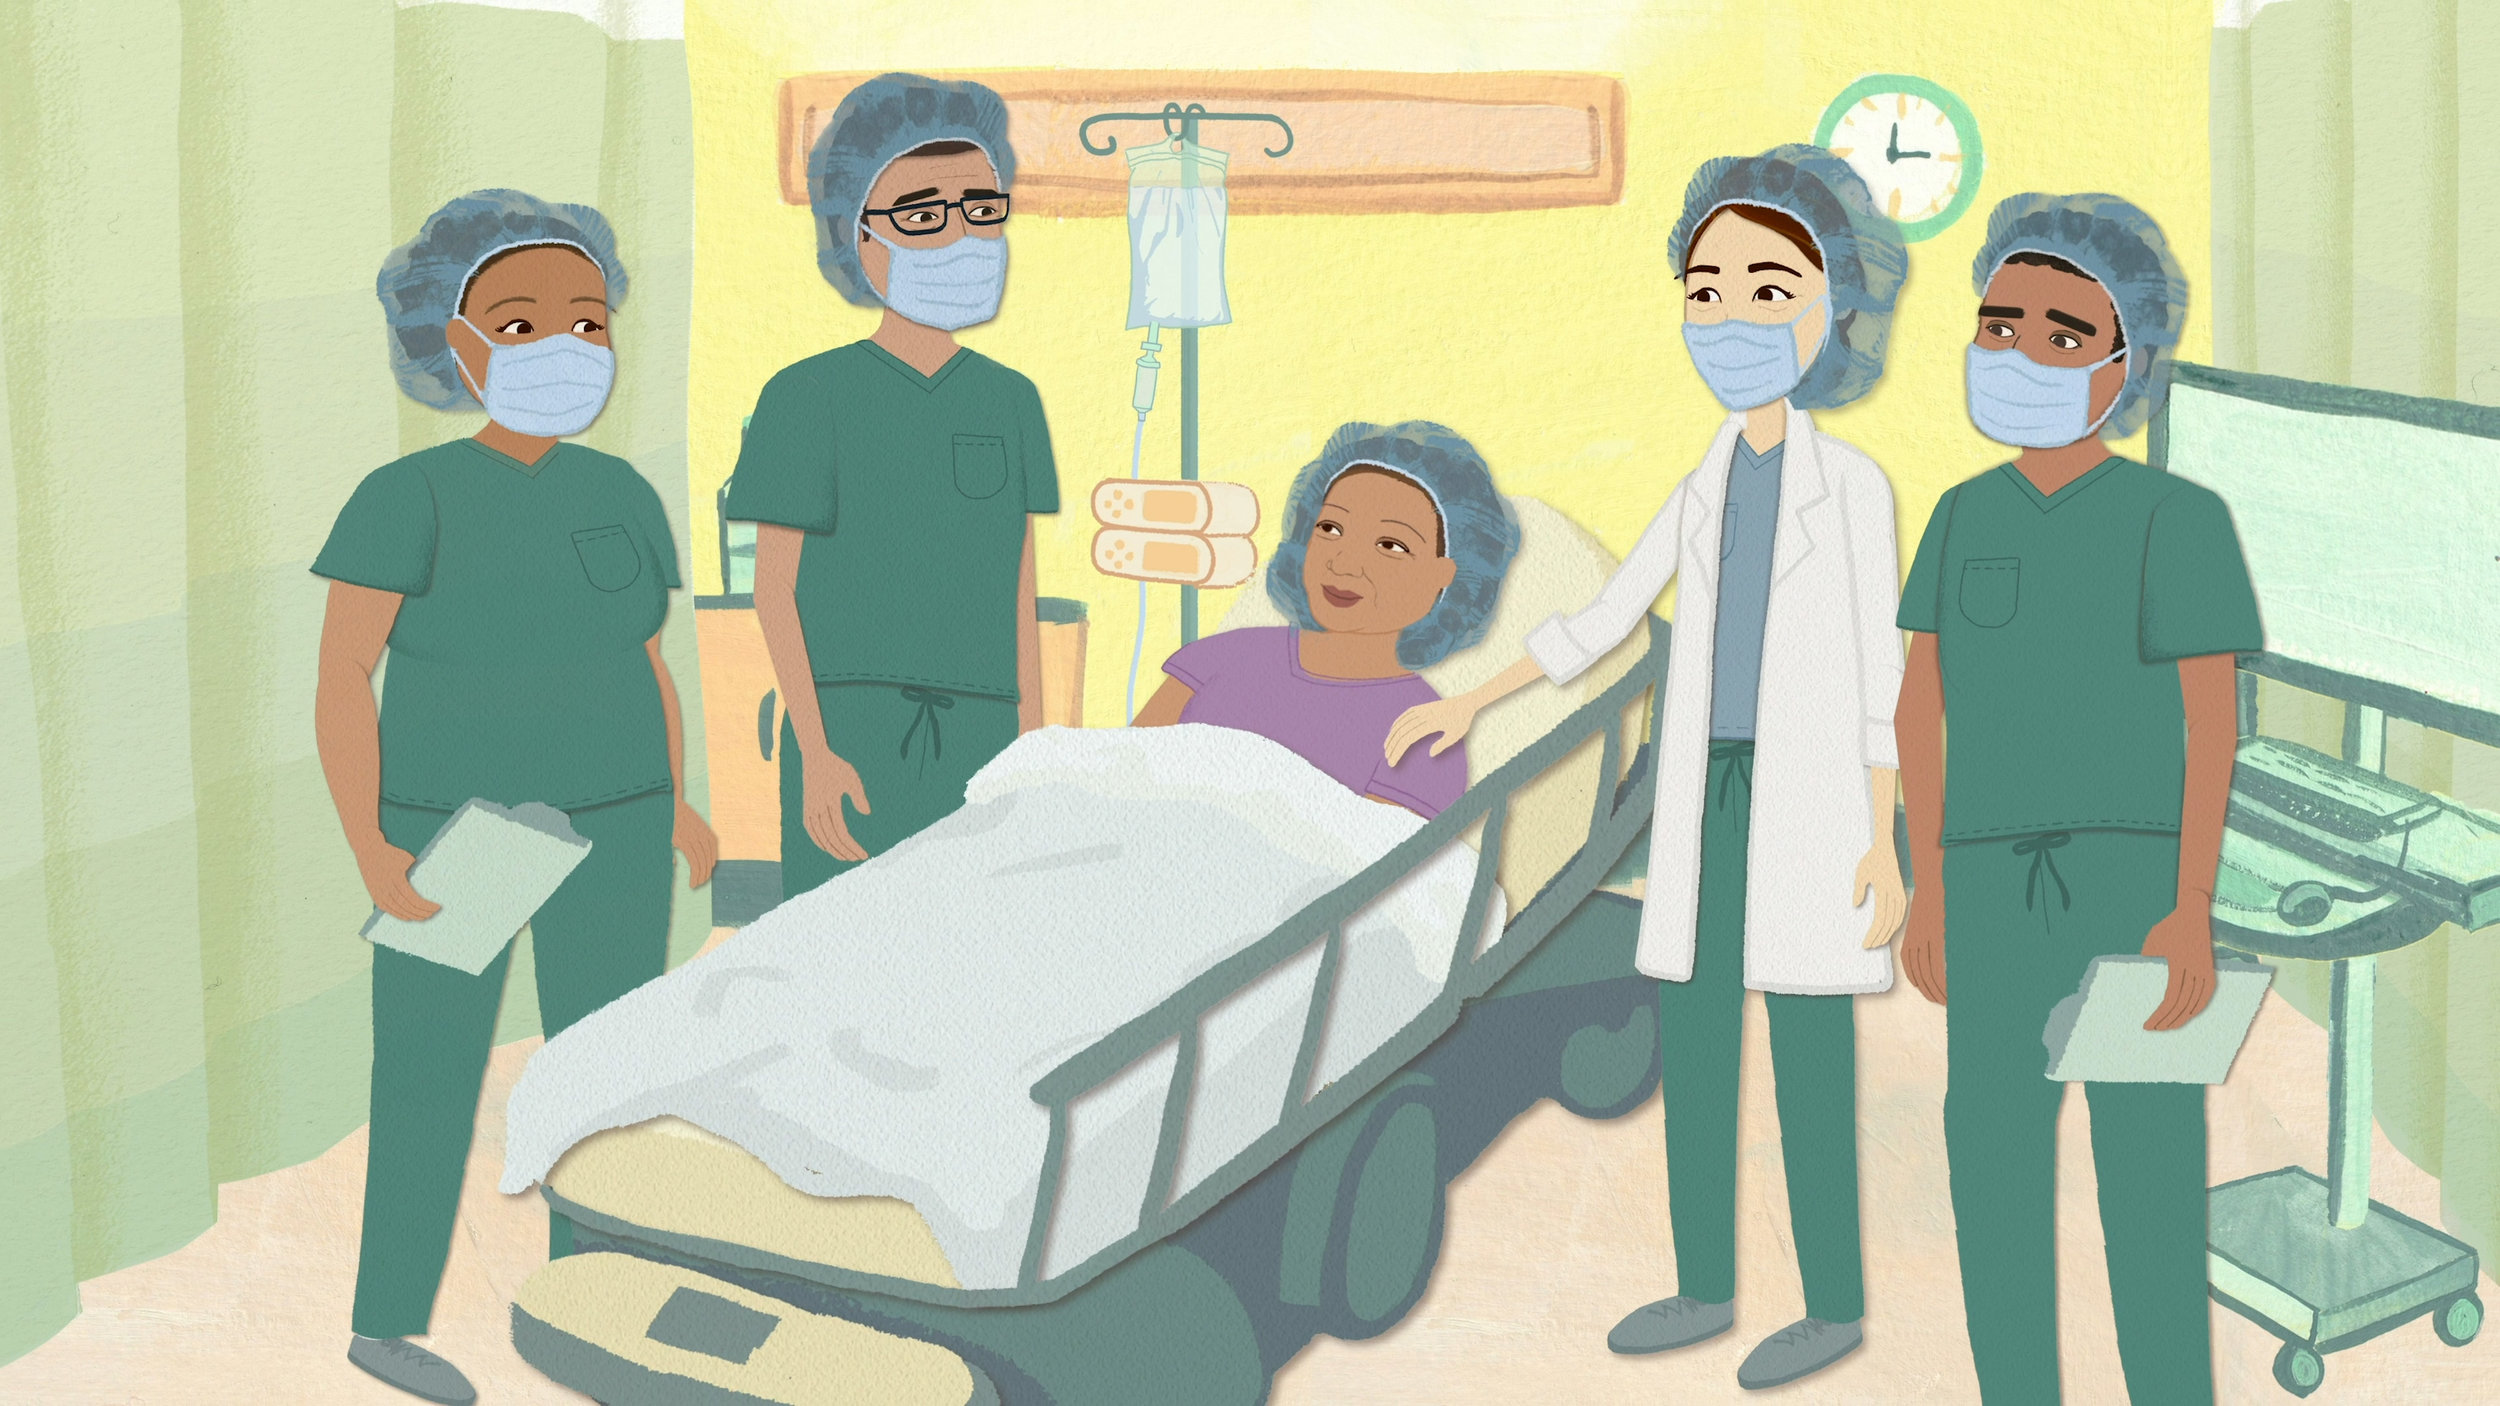 UCSF anesthesia explainer video. Animation studio San Francisco Bay Area.